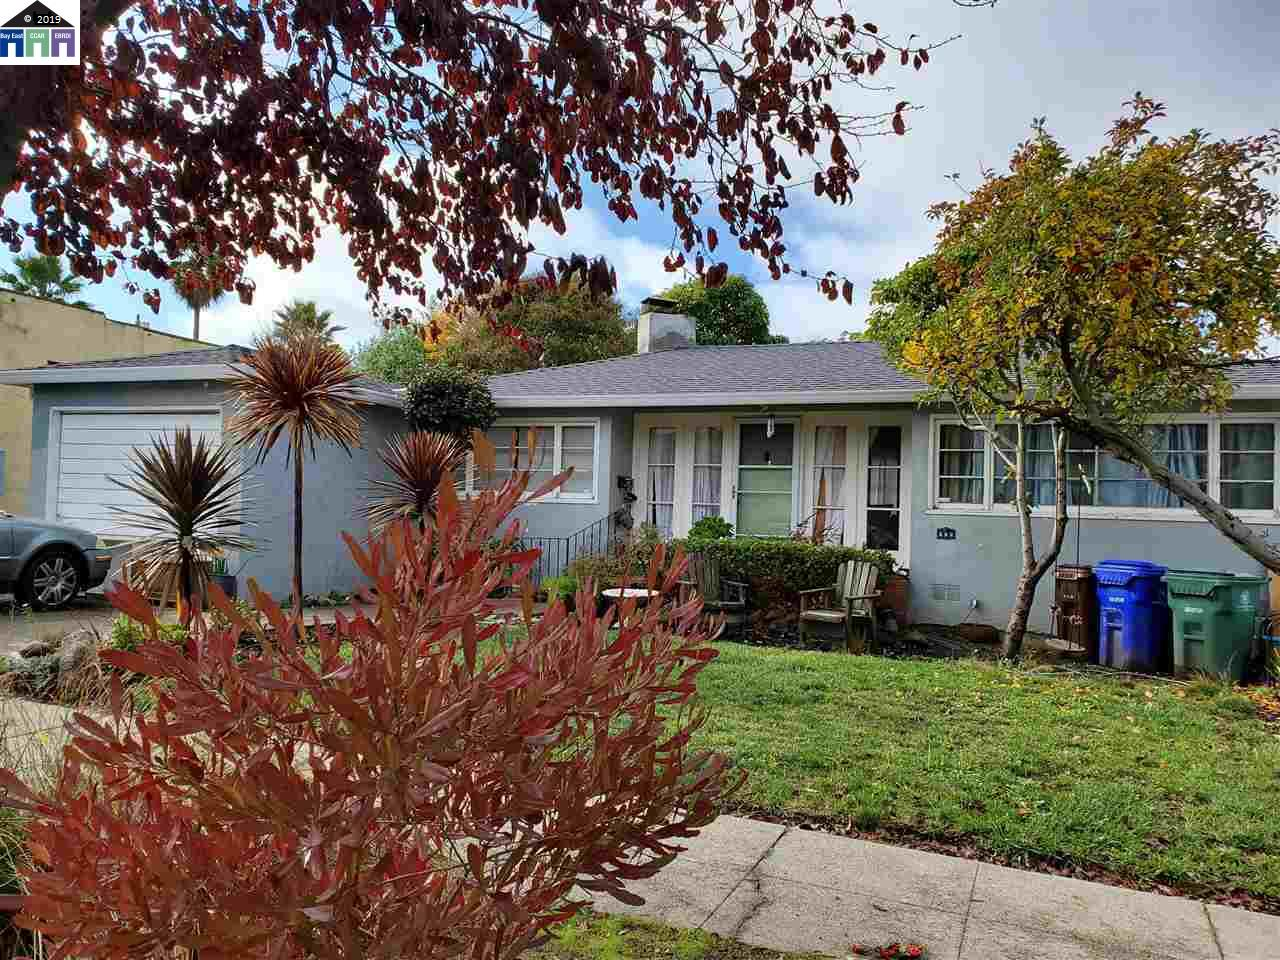 585 MCLAUGHLIN STREET, RICHMOND, CA 94805